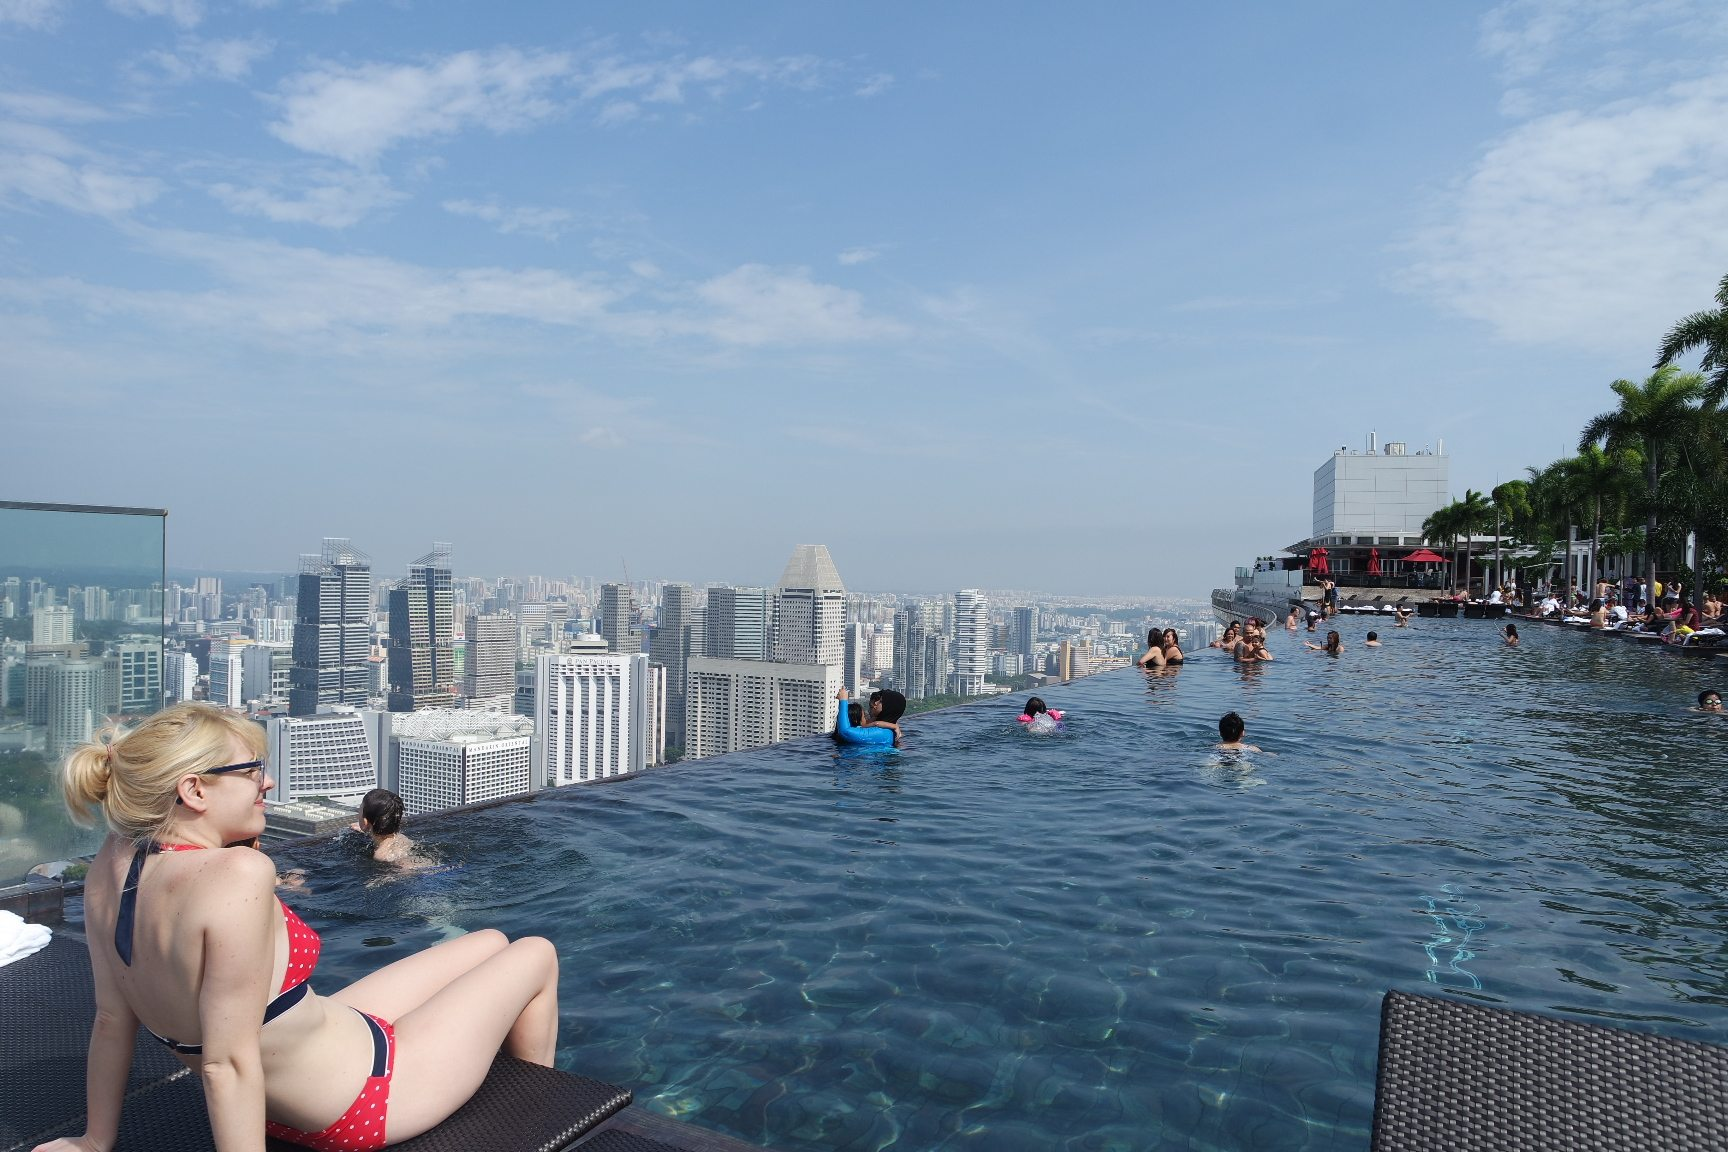 Marina bay sands world s largest rooftop infinity pool lamyerda - Marina bay singapore pool ...